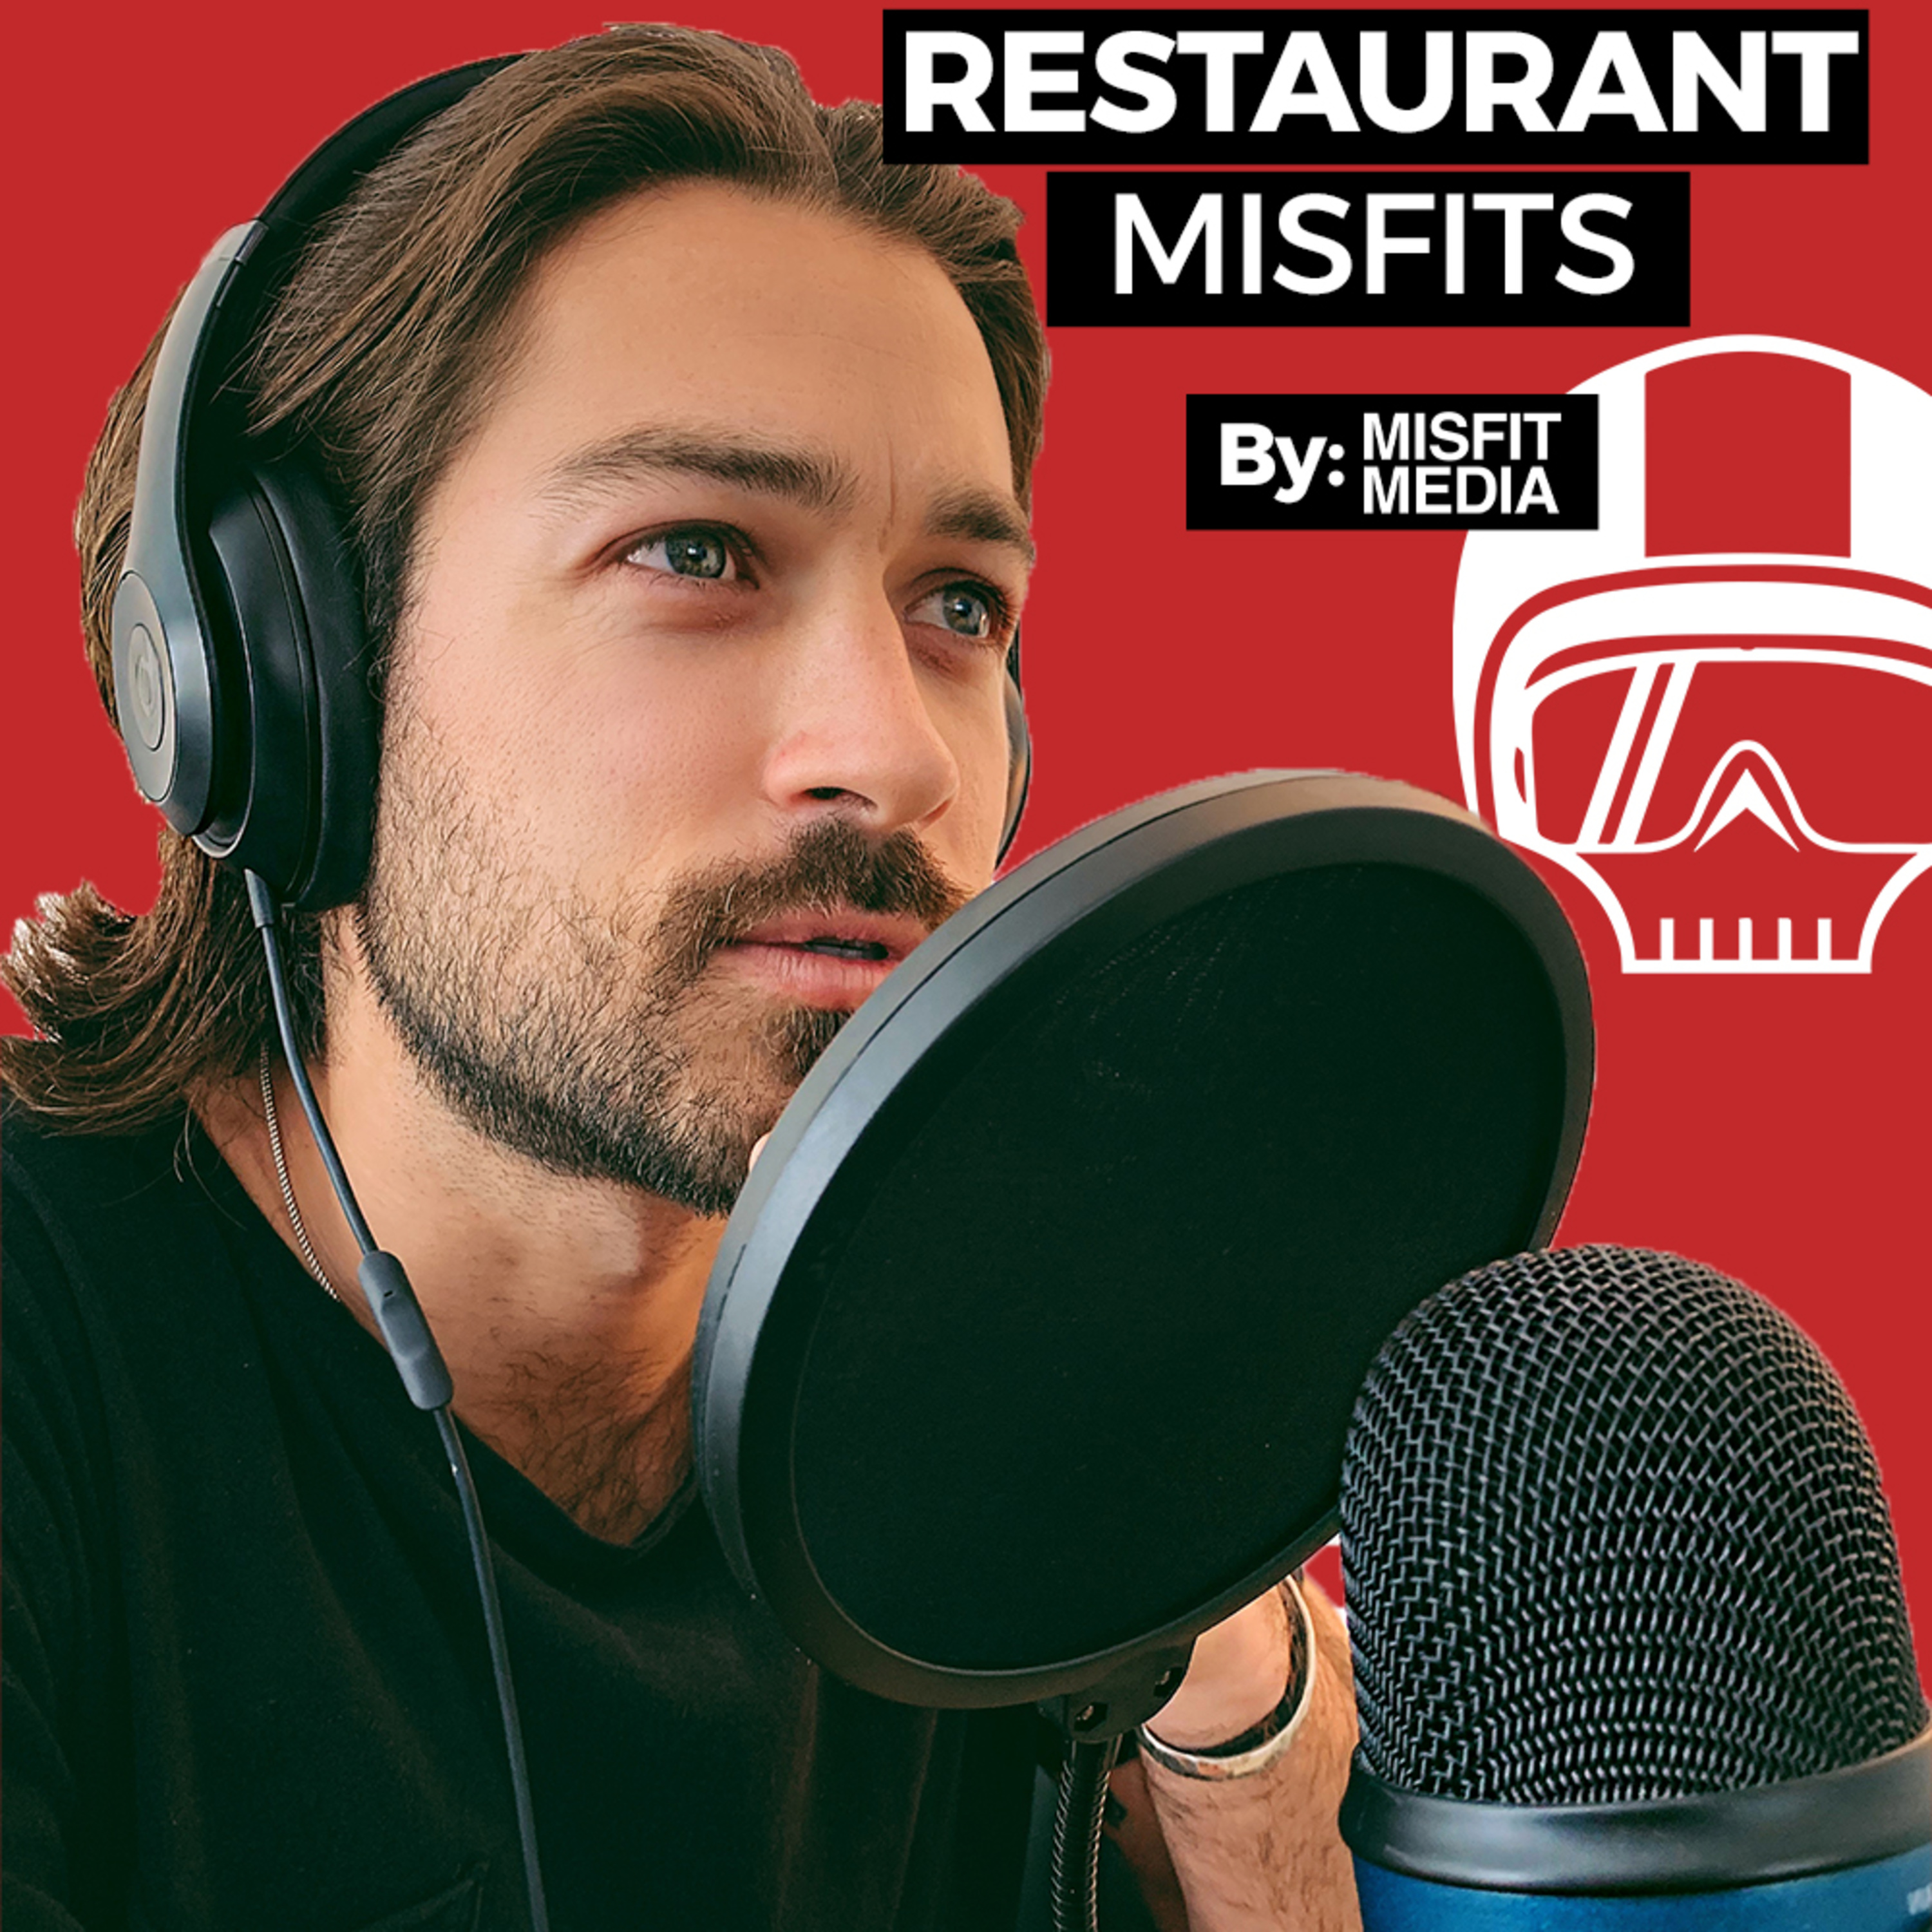 EP06 - Creating The Restaurant Experience at Home With Red Cork Bistro